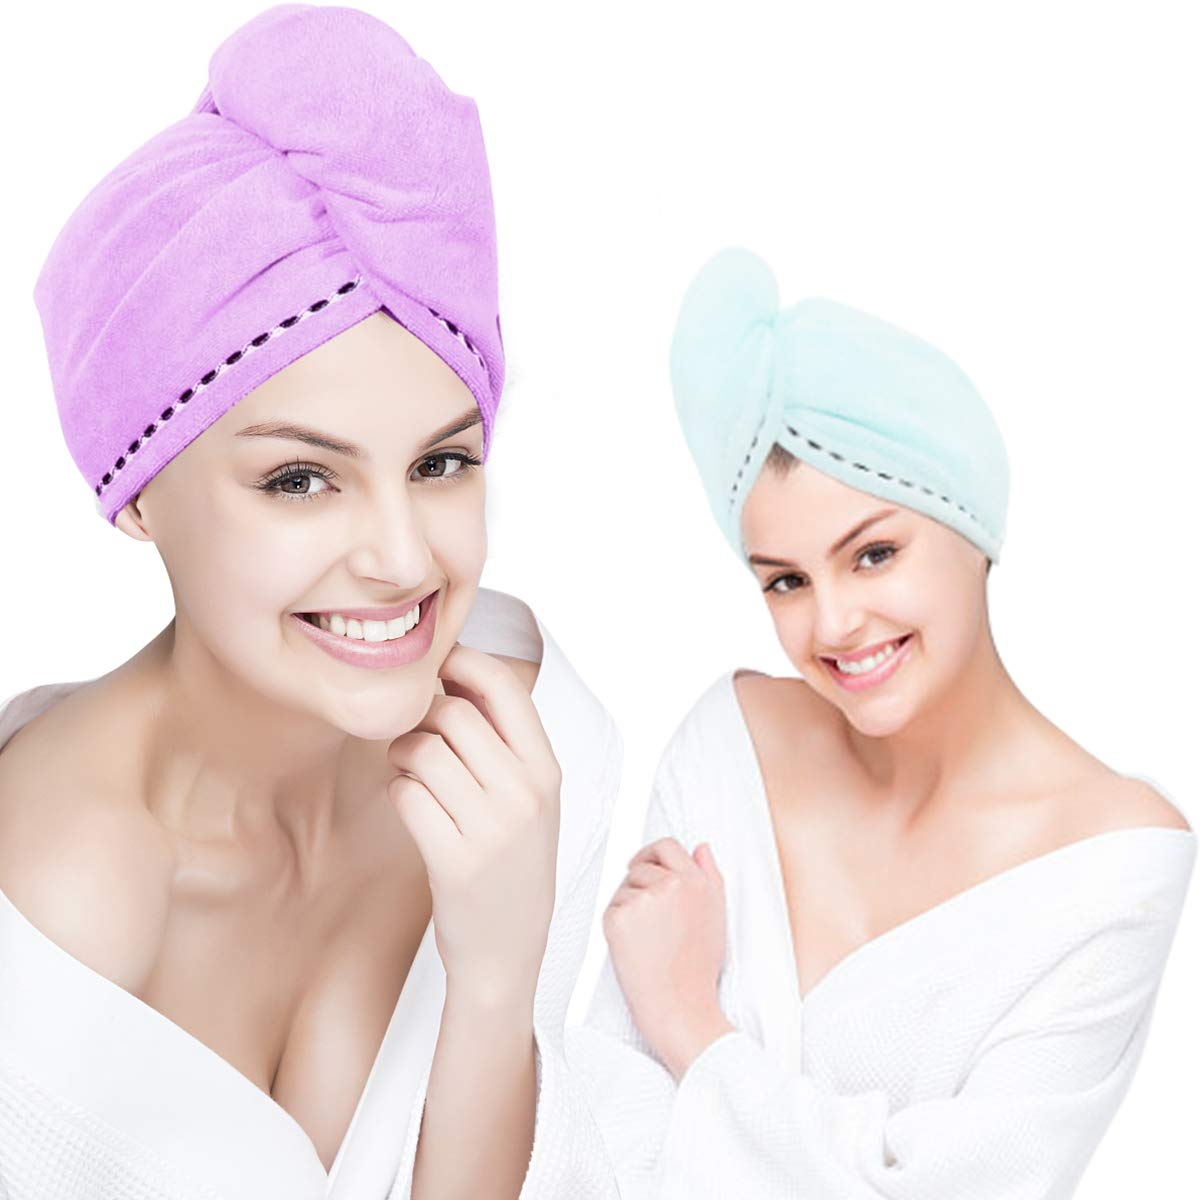 Microfiber Hair Towel Wrap Super Absorbent Quick Dry Turban Drying Curly Long Thick Hair Bath Cap Drying Wraps Bathroom Towels